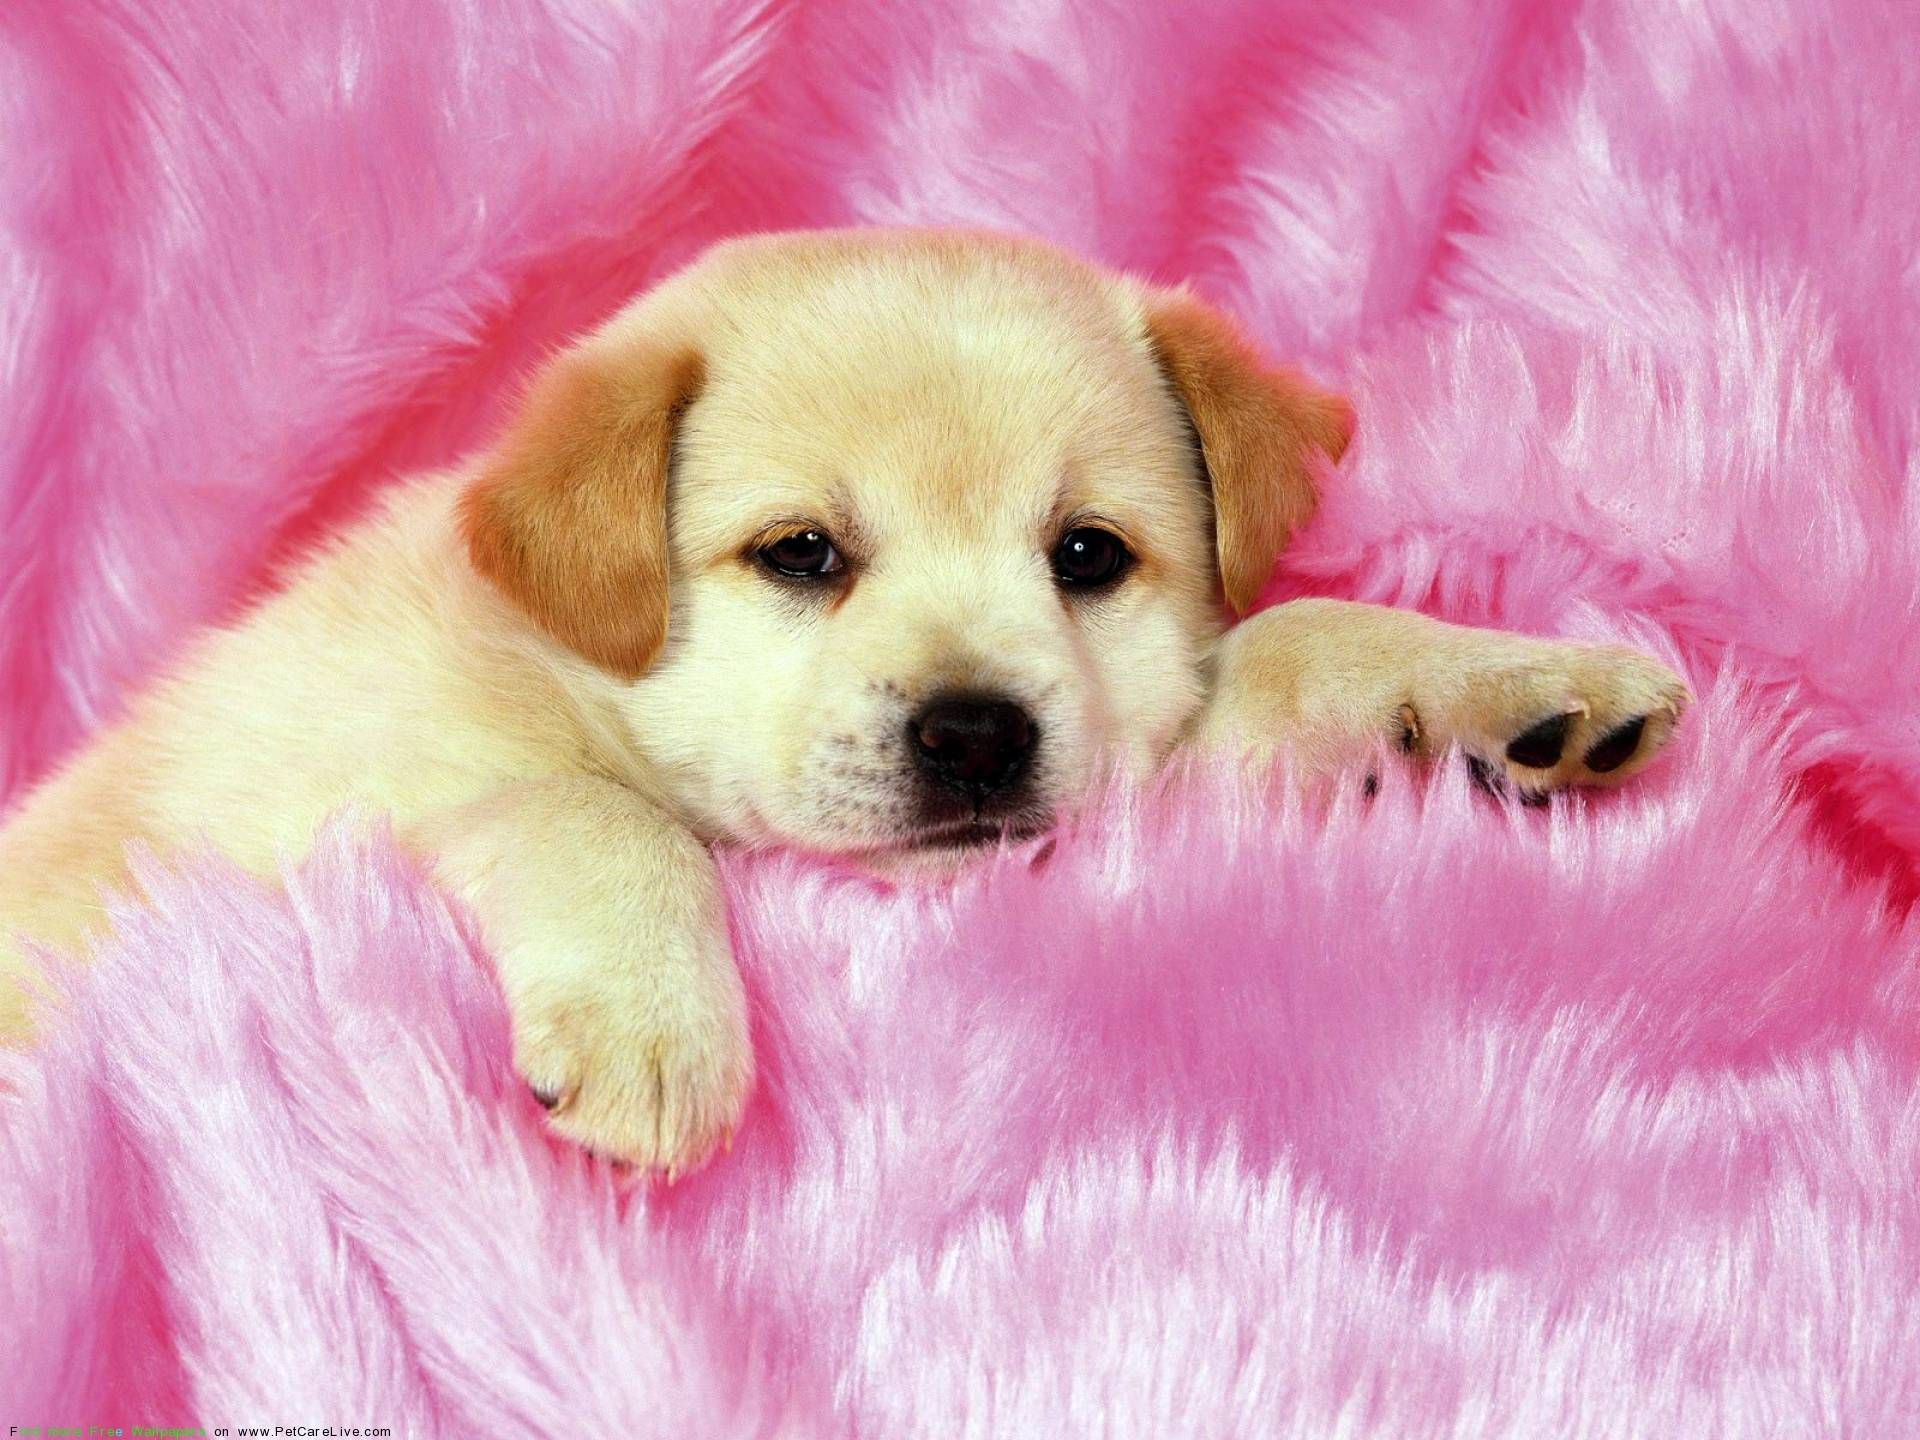 Cute Dogs And Puppies Wallpapers  dogs Cute 1920x1440